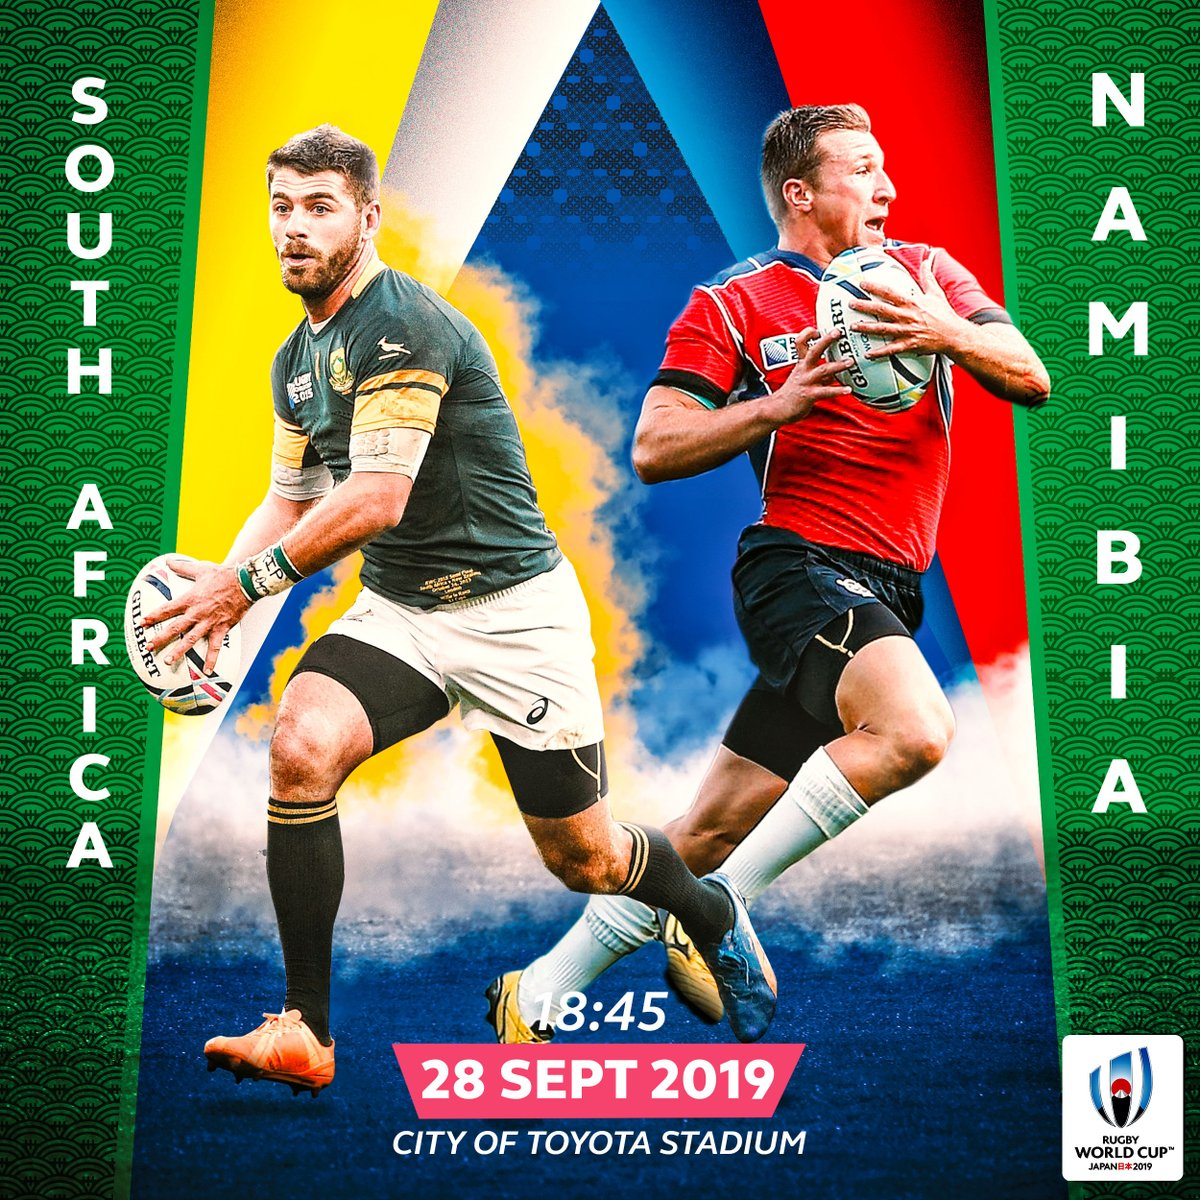 test Twitter Media - Apply for your #RWC2019 tickets through the general ticketing ballot:  Match Focus 🔍  @Springboks v @RugbyNamibia  📍 City of Toyota Stadium  🗓 28 Sept, 18:45hrs (GMT+9)  https://t.co/wiftbbRu2B https://t.co/ynFnTsBwiP